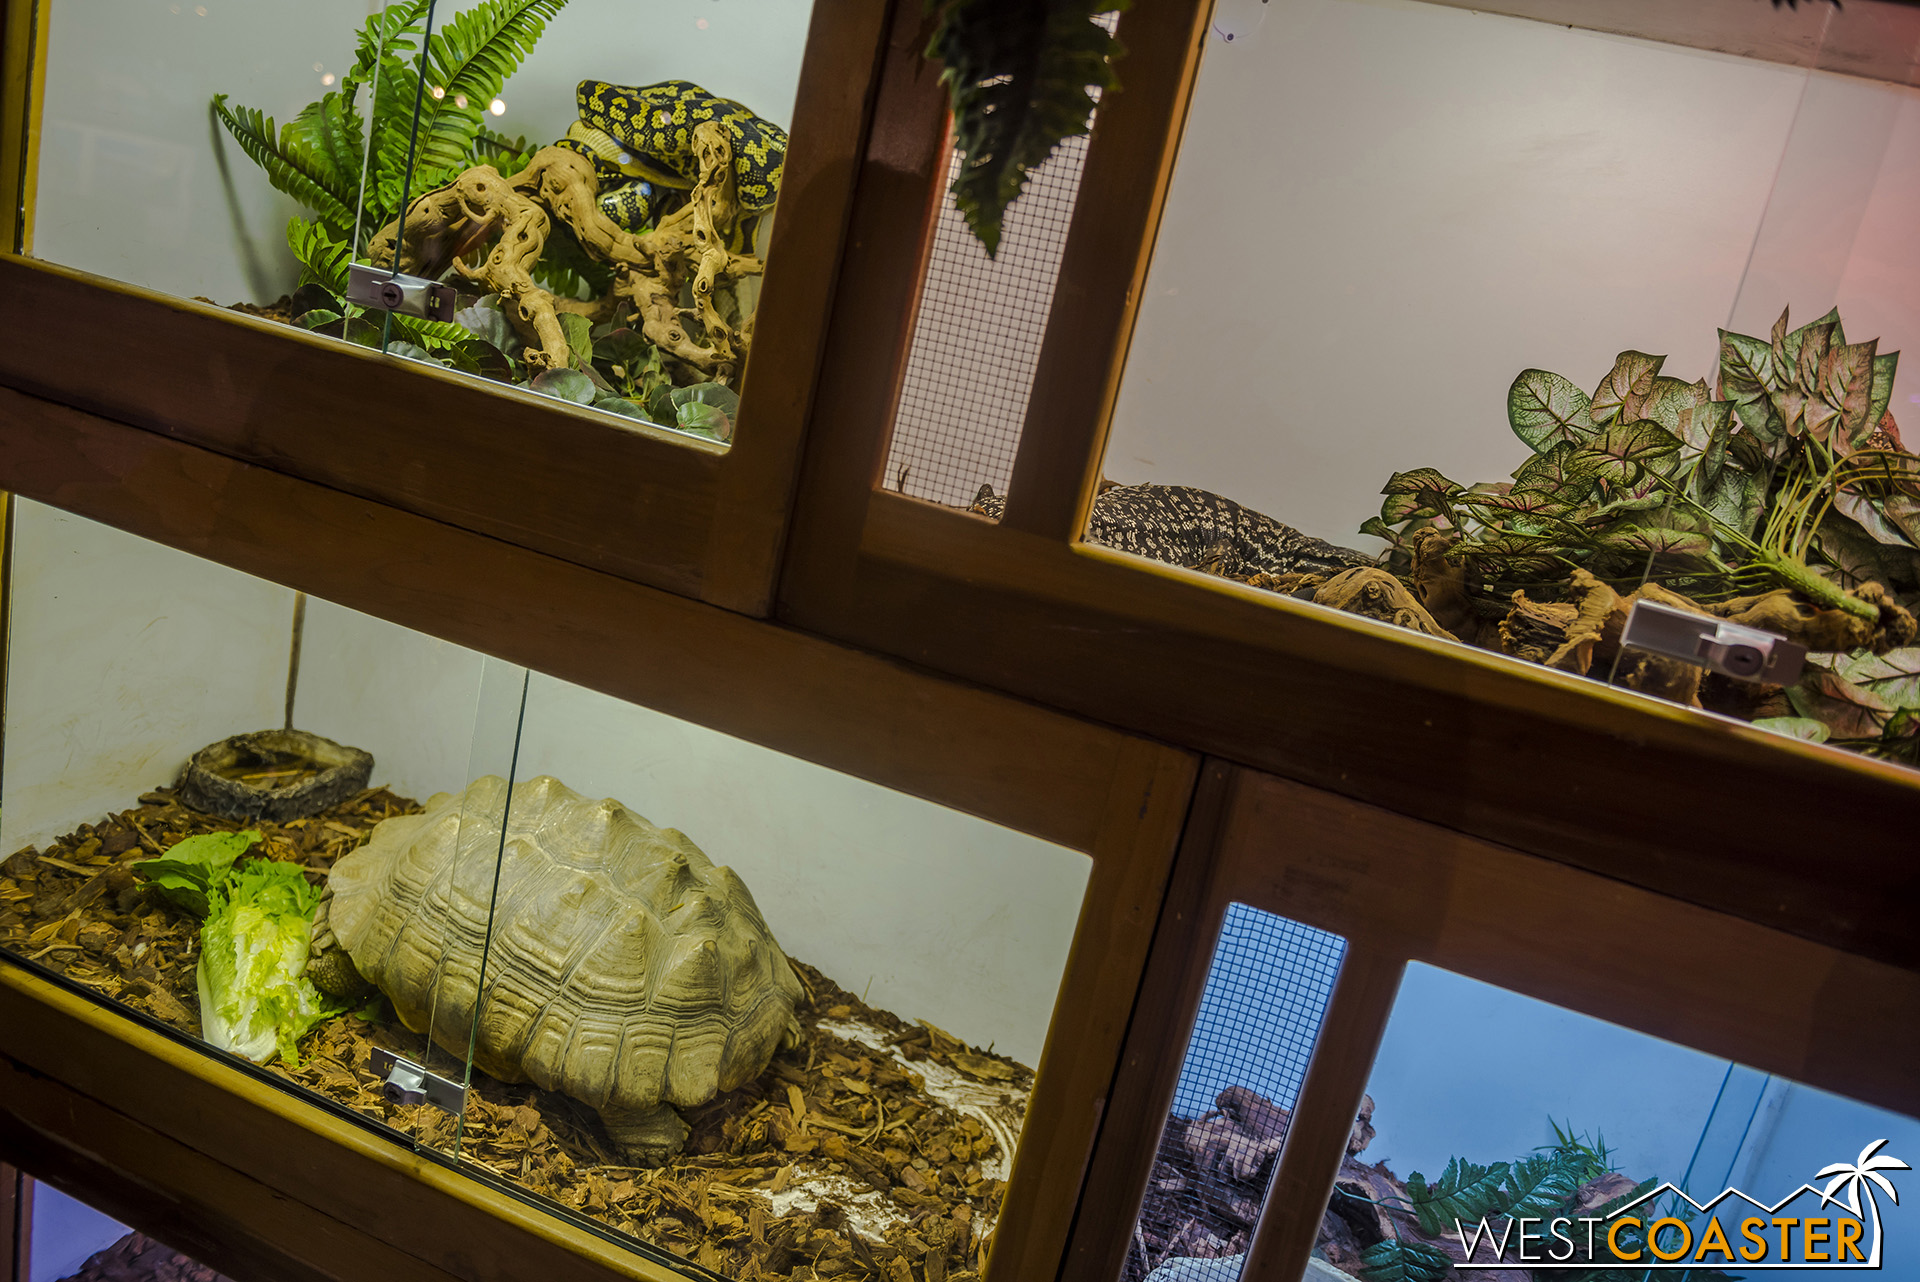 This reptile exhibit was one of several geared toward the autumn holiday mood.